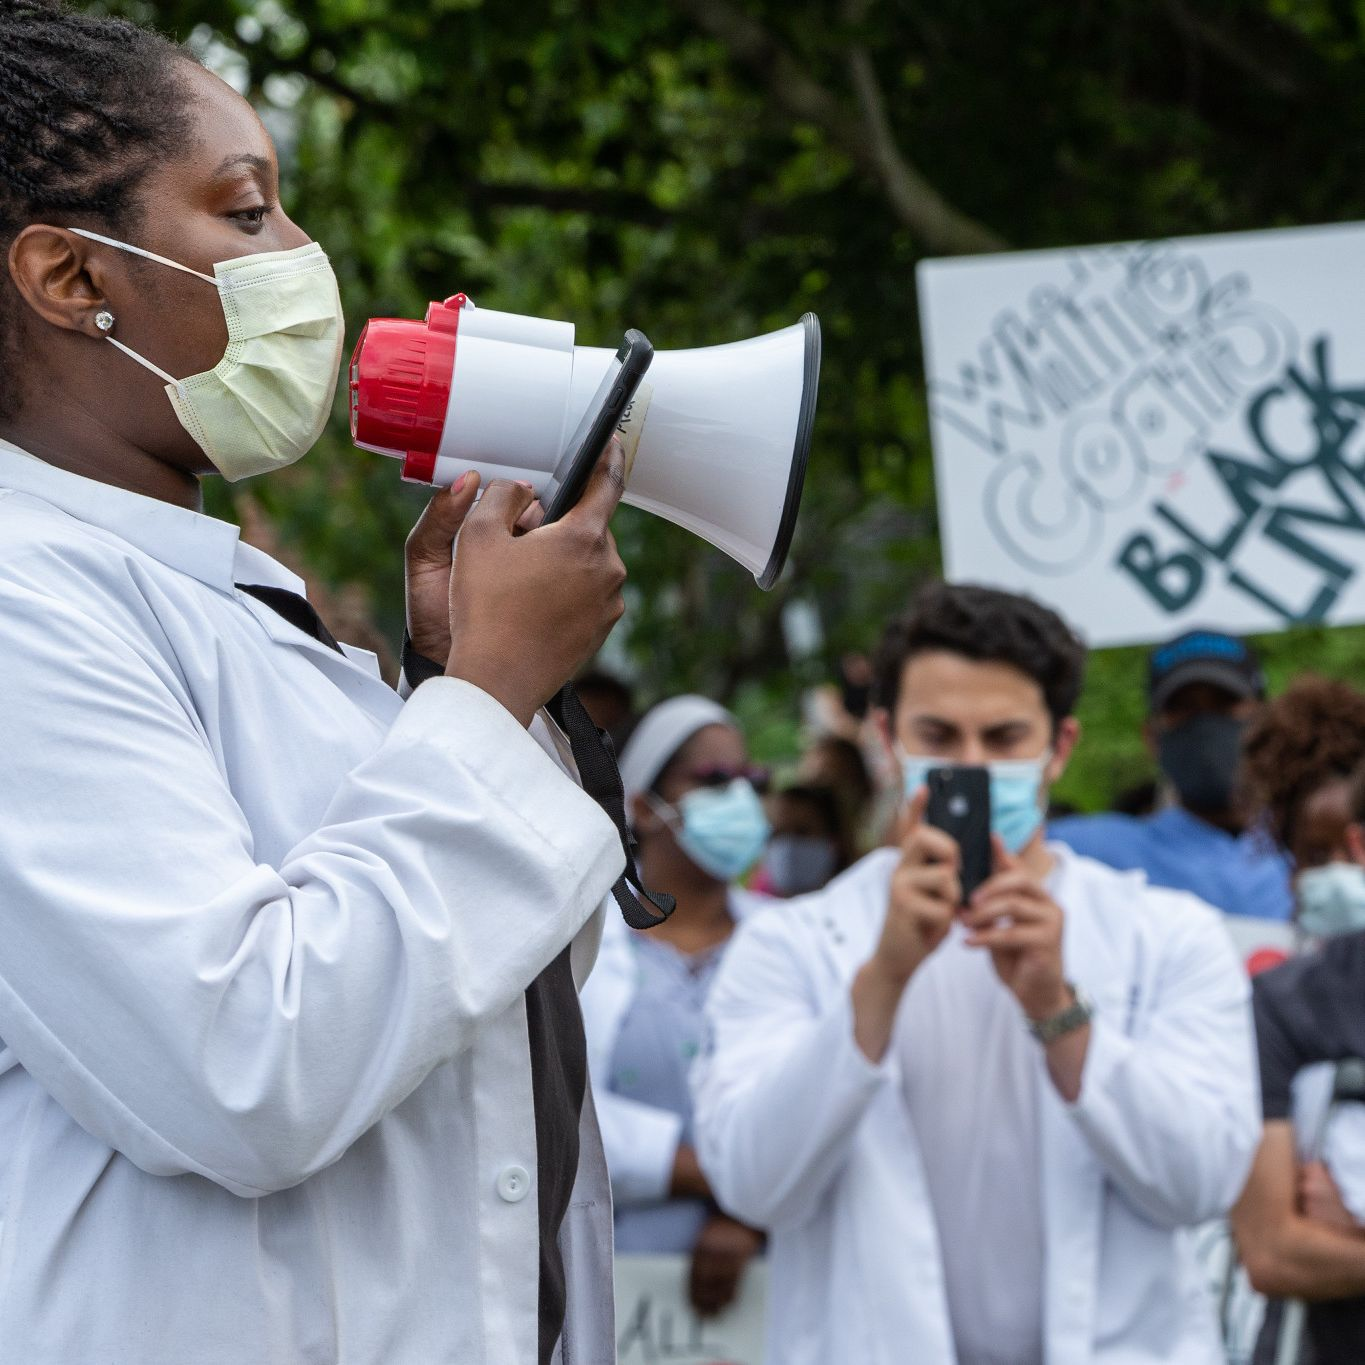 A woman in a white coat and mask speaks into a megaphone, a sign says 'white coats black lives'